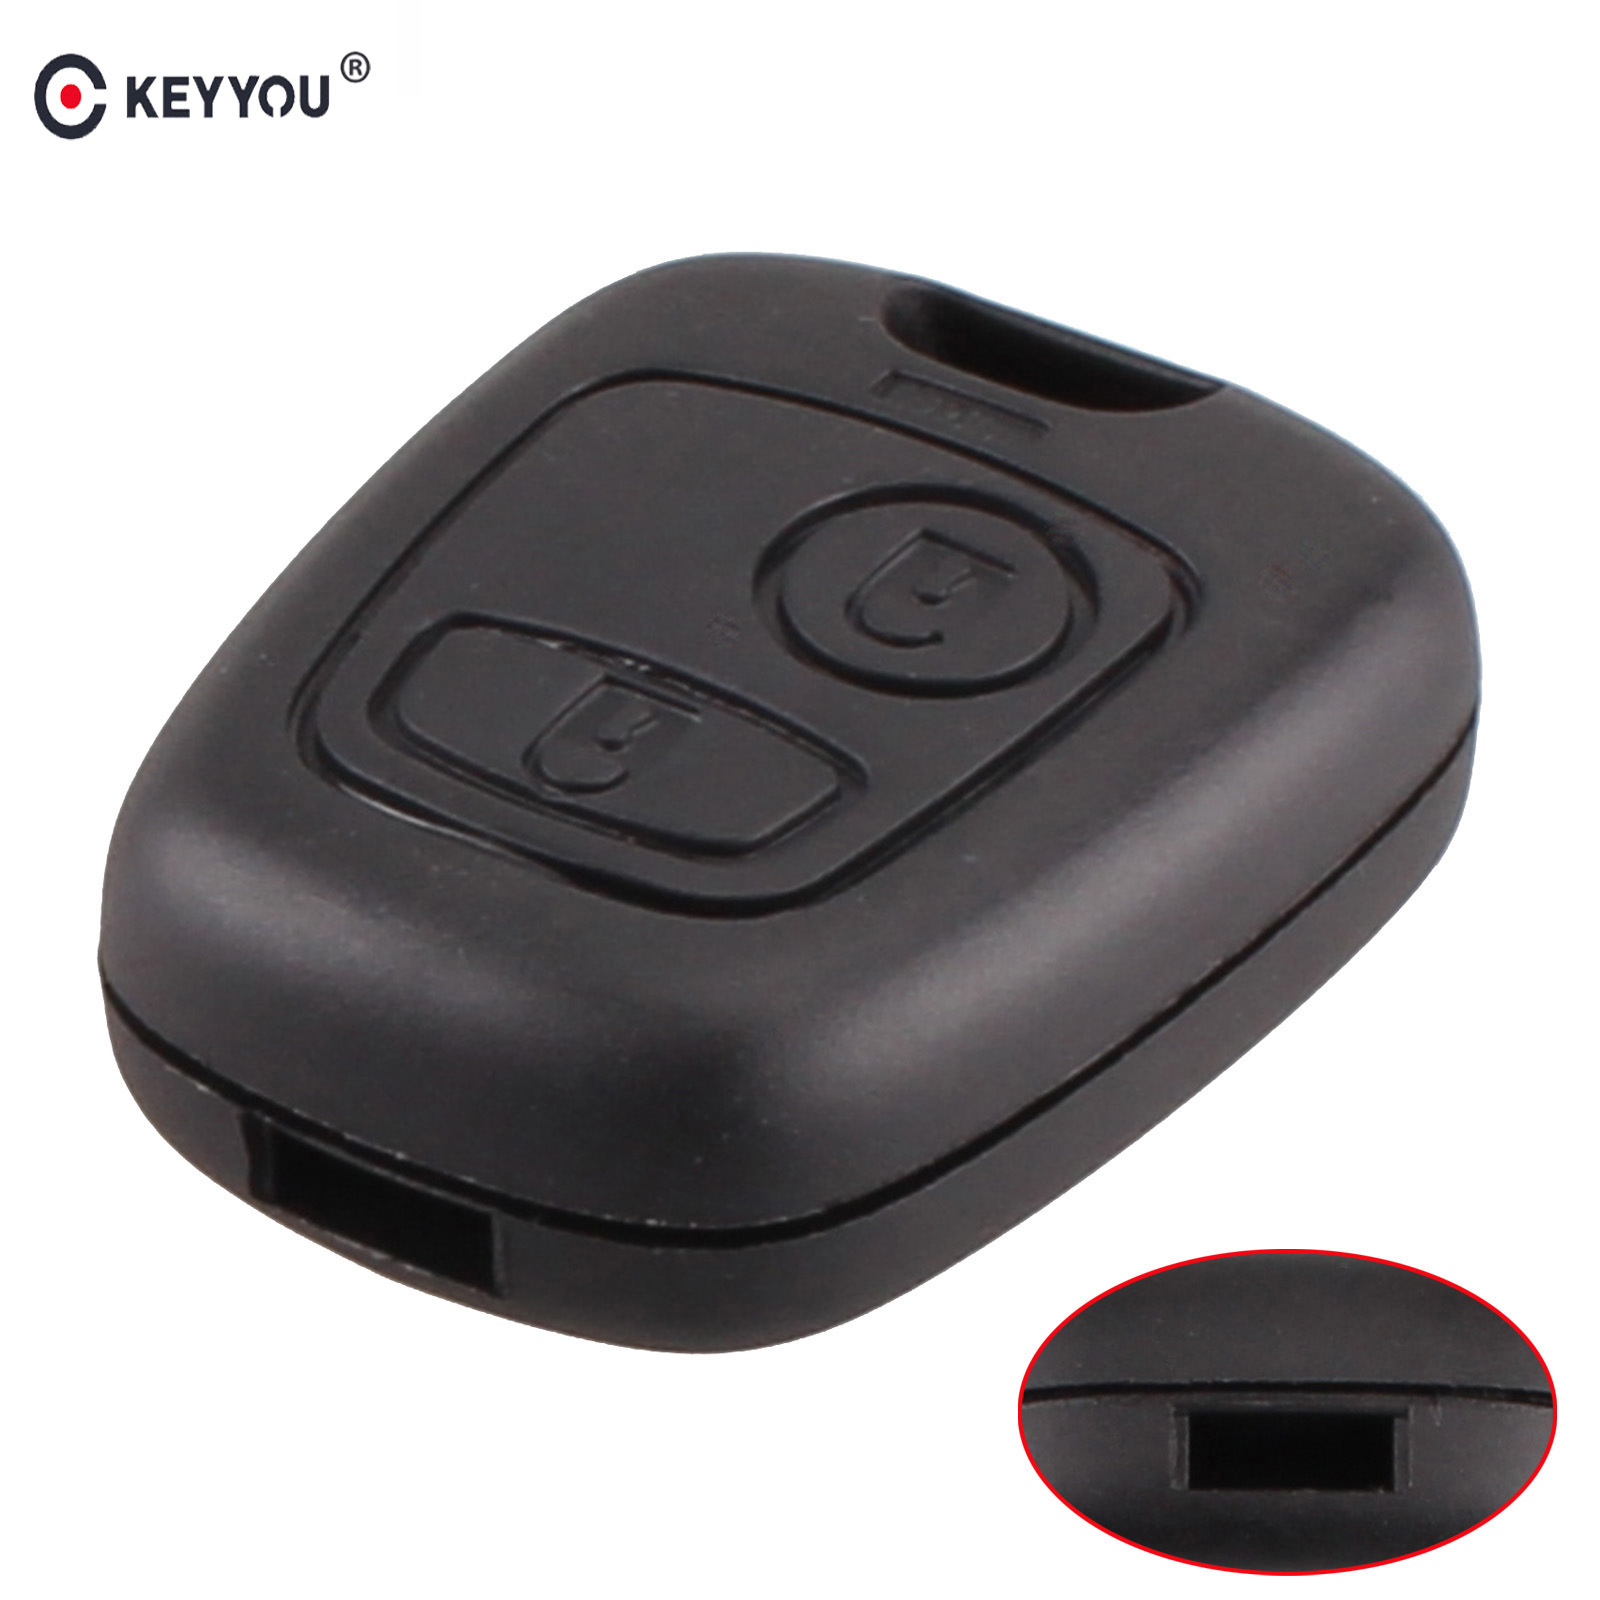 KEYYOU New Replacement 2 Buttons Remote Car Key Case Shell For Peugeot 107 207 307 407 206 306 406 Fob Cover Without BladeKEYYOU New Replacement 2 Buttons Remote Car Key Case Shell For Peugeot 107 207 307 407 206 306 406 Fob Cover Without Blade